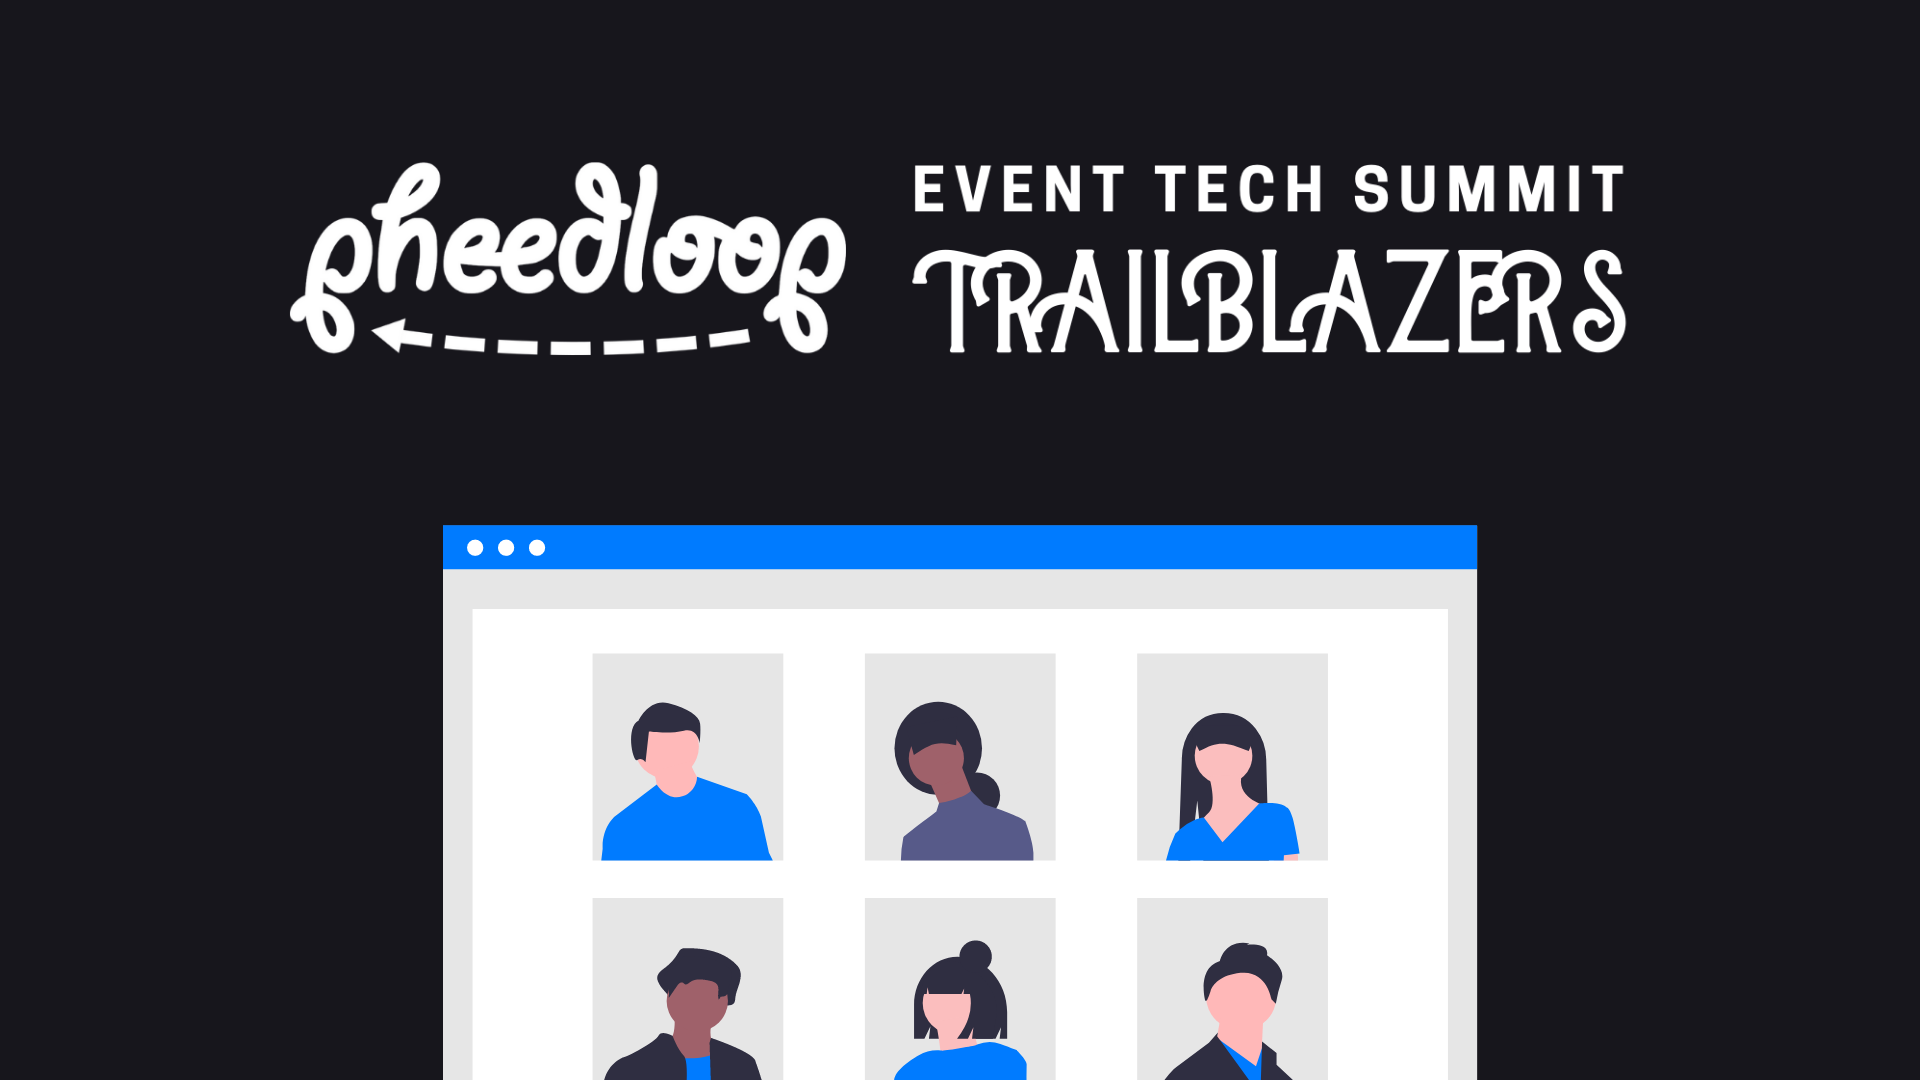 Attend a Free PheedLoop Powered Virtual Event! Join Us on December 16th for the PheedLoop Trailblazers Event Tech Summit!